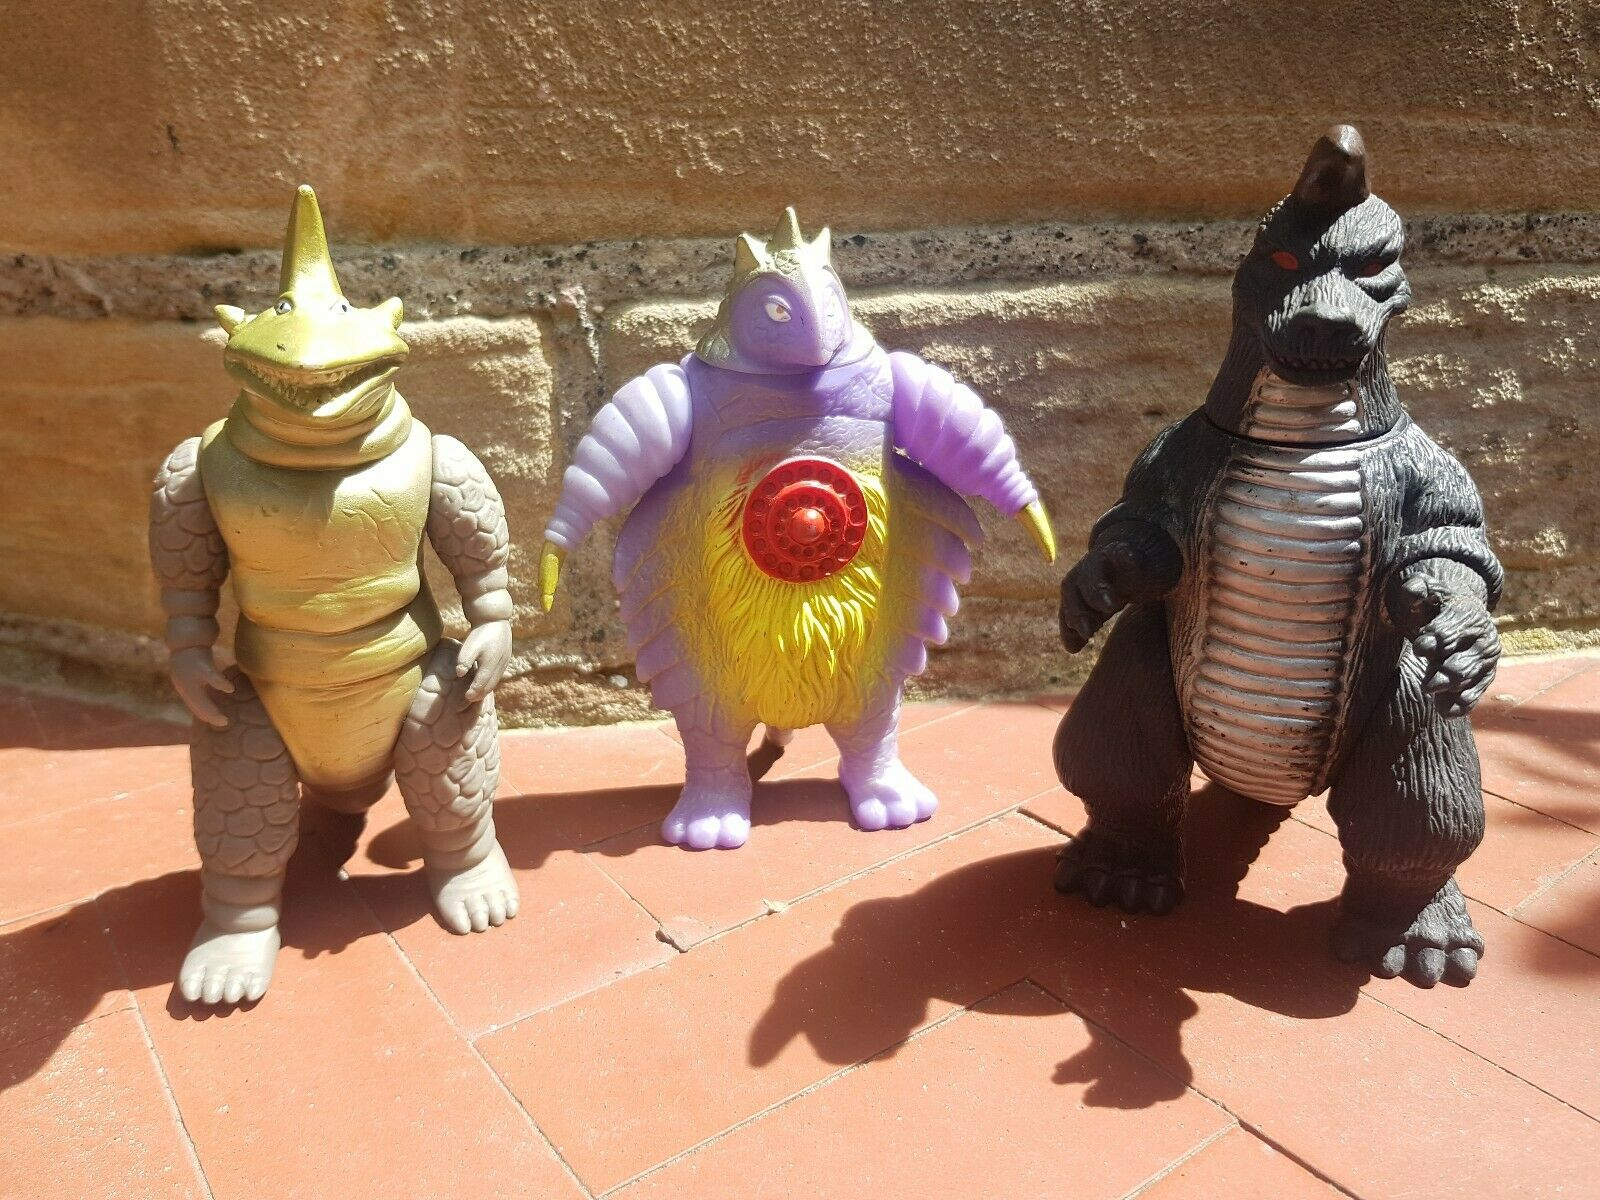 Ultraman Kaiju Collection of 3 Vinyl Figures 6 7 inches tall Vintage Bootlegs